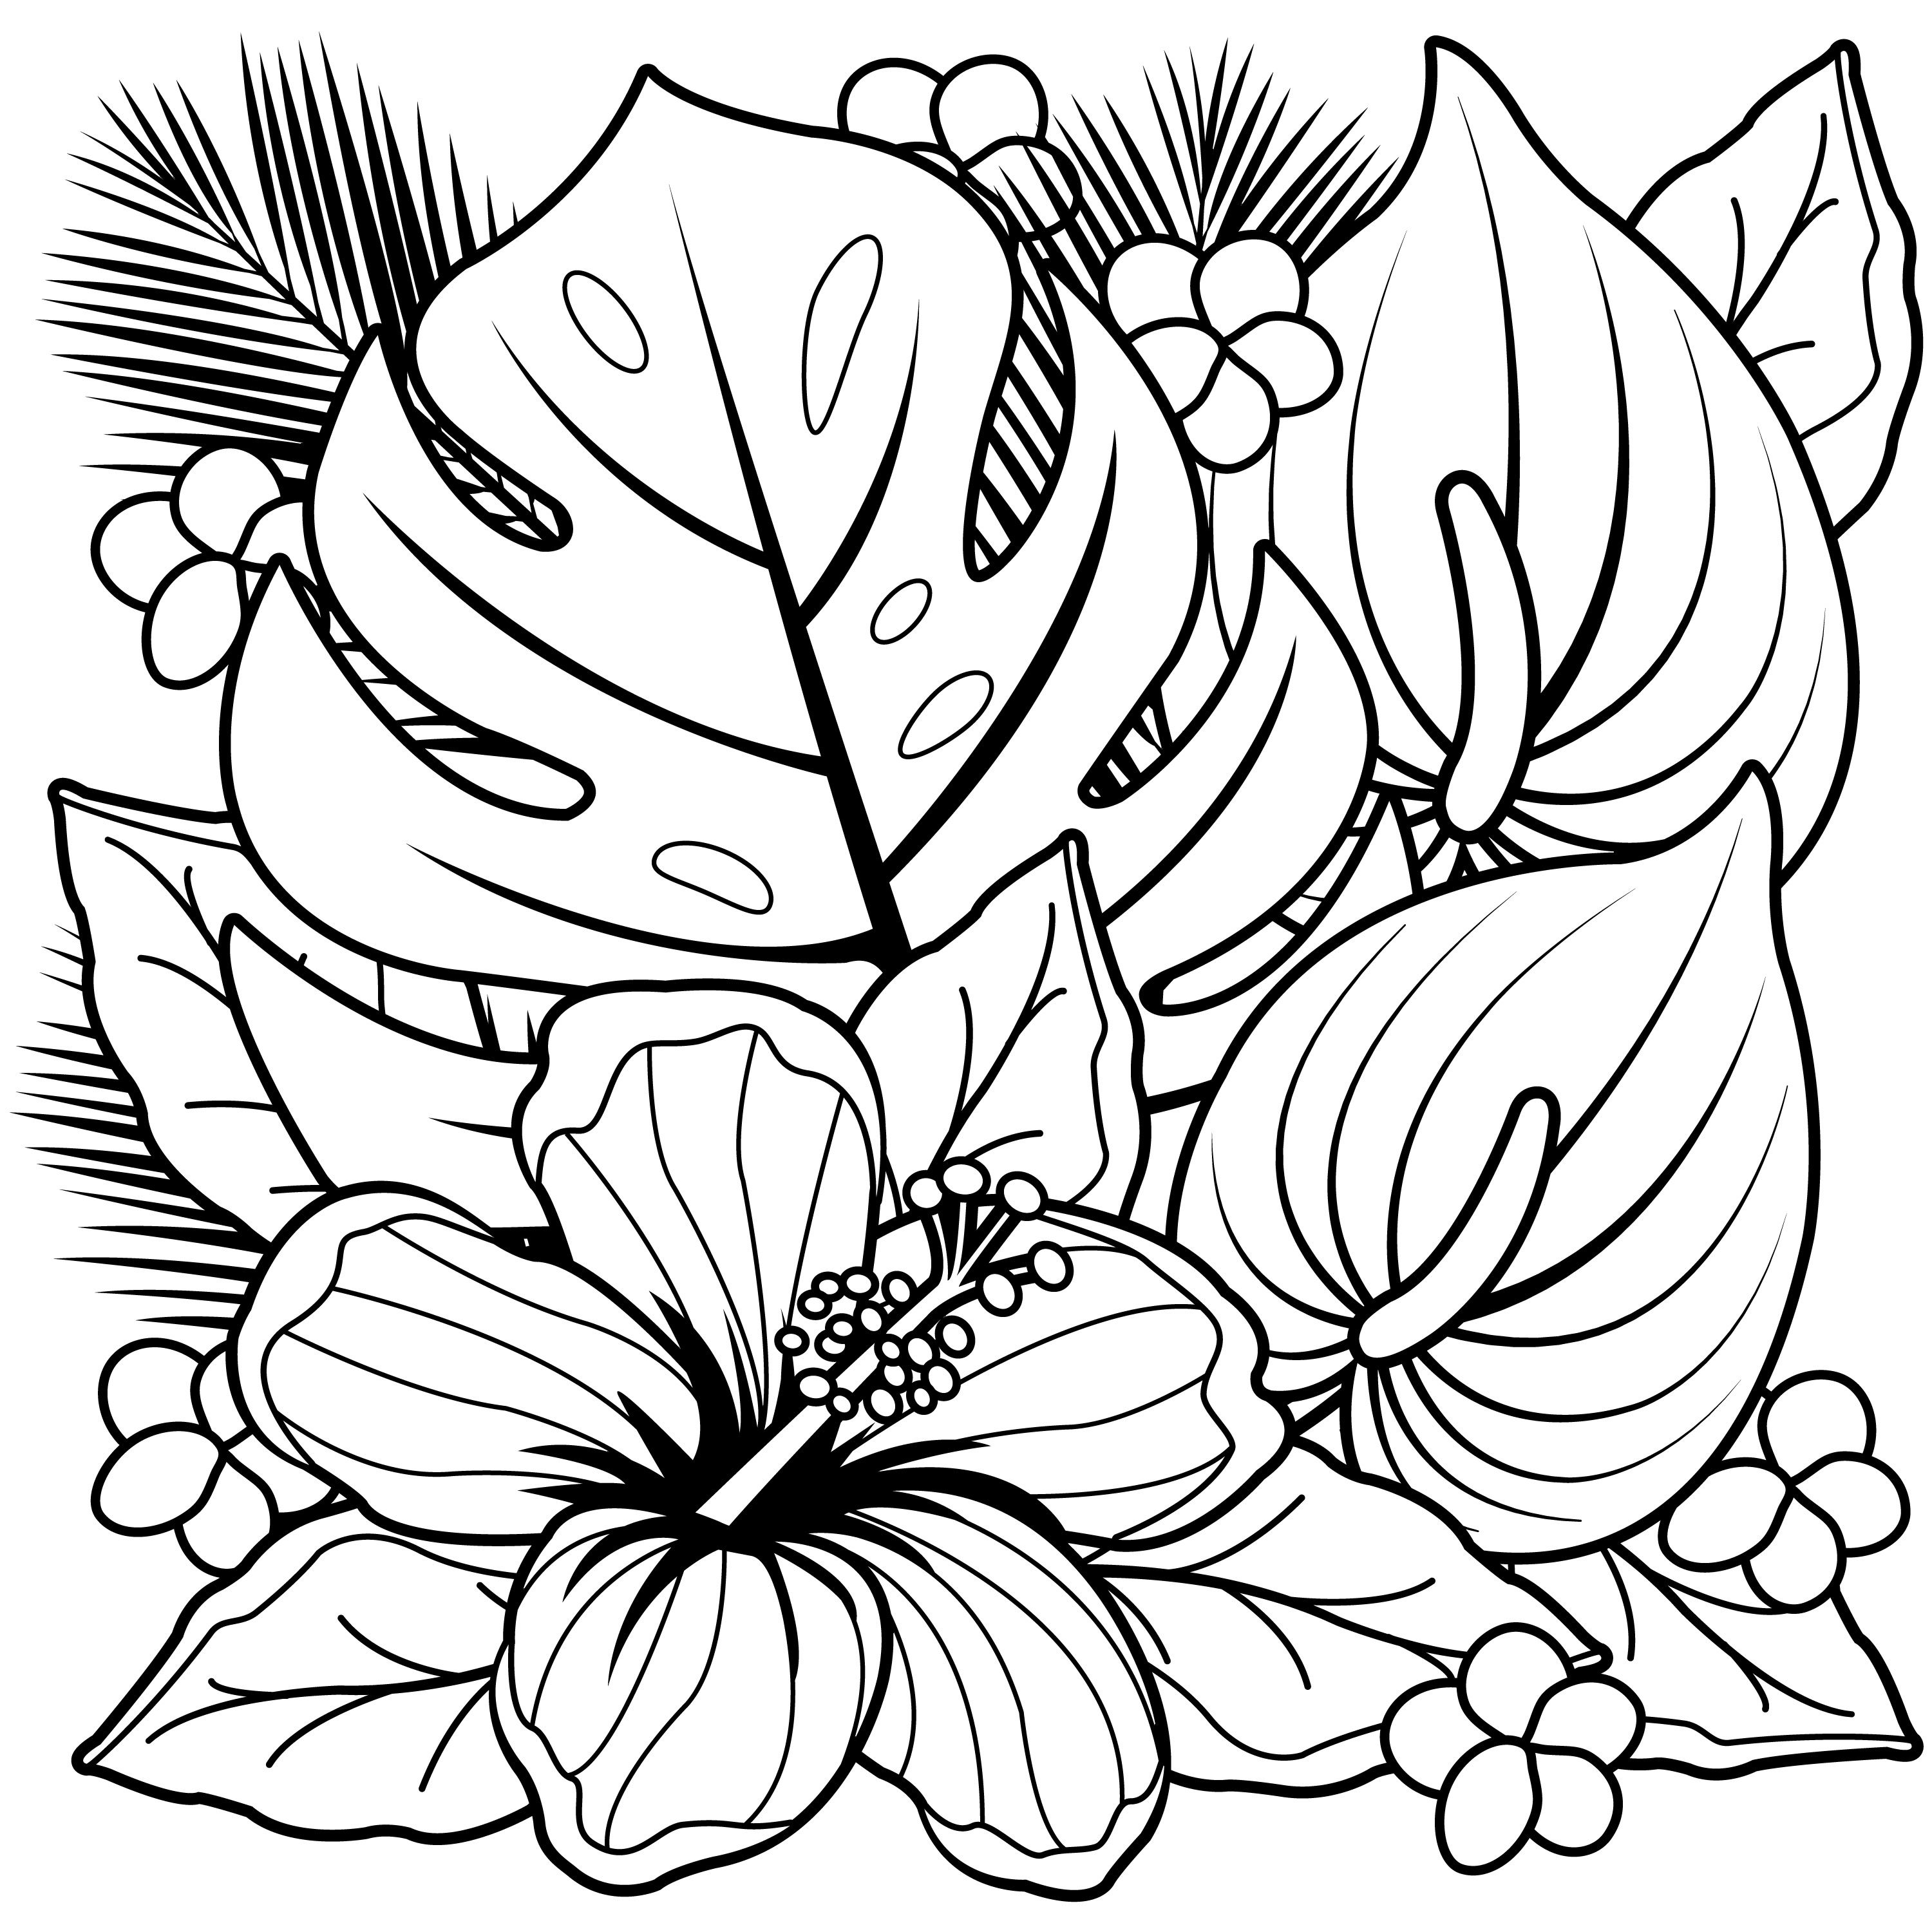 Pin By Deborah Keeton On Coloring Pages Flower Coloring Sheets Printable Flower Coloring Pages Flower Coloring Pages